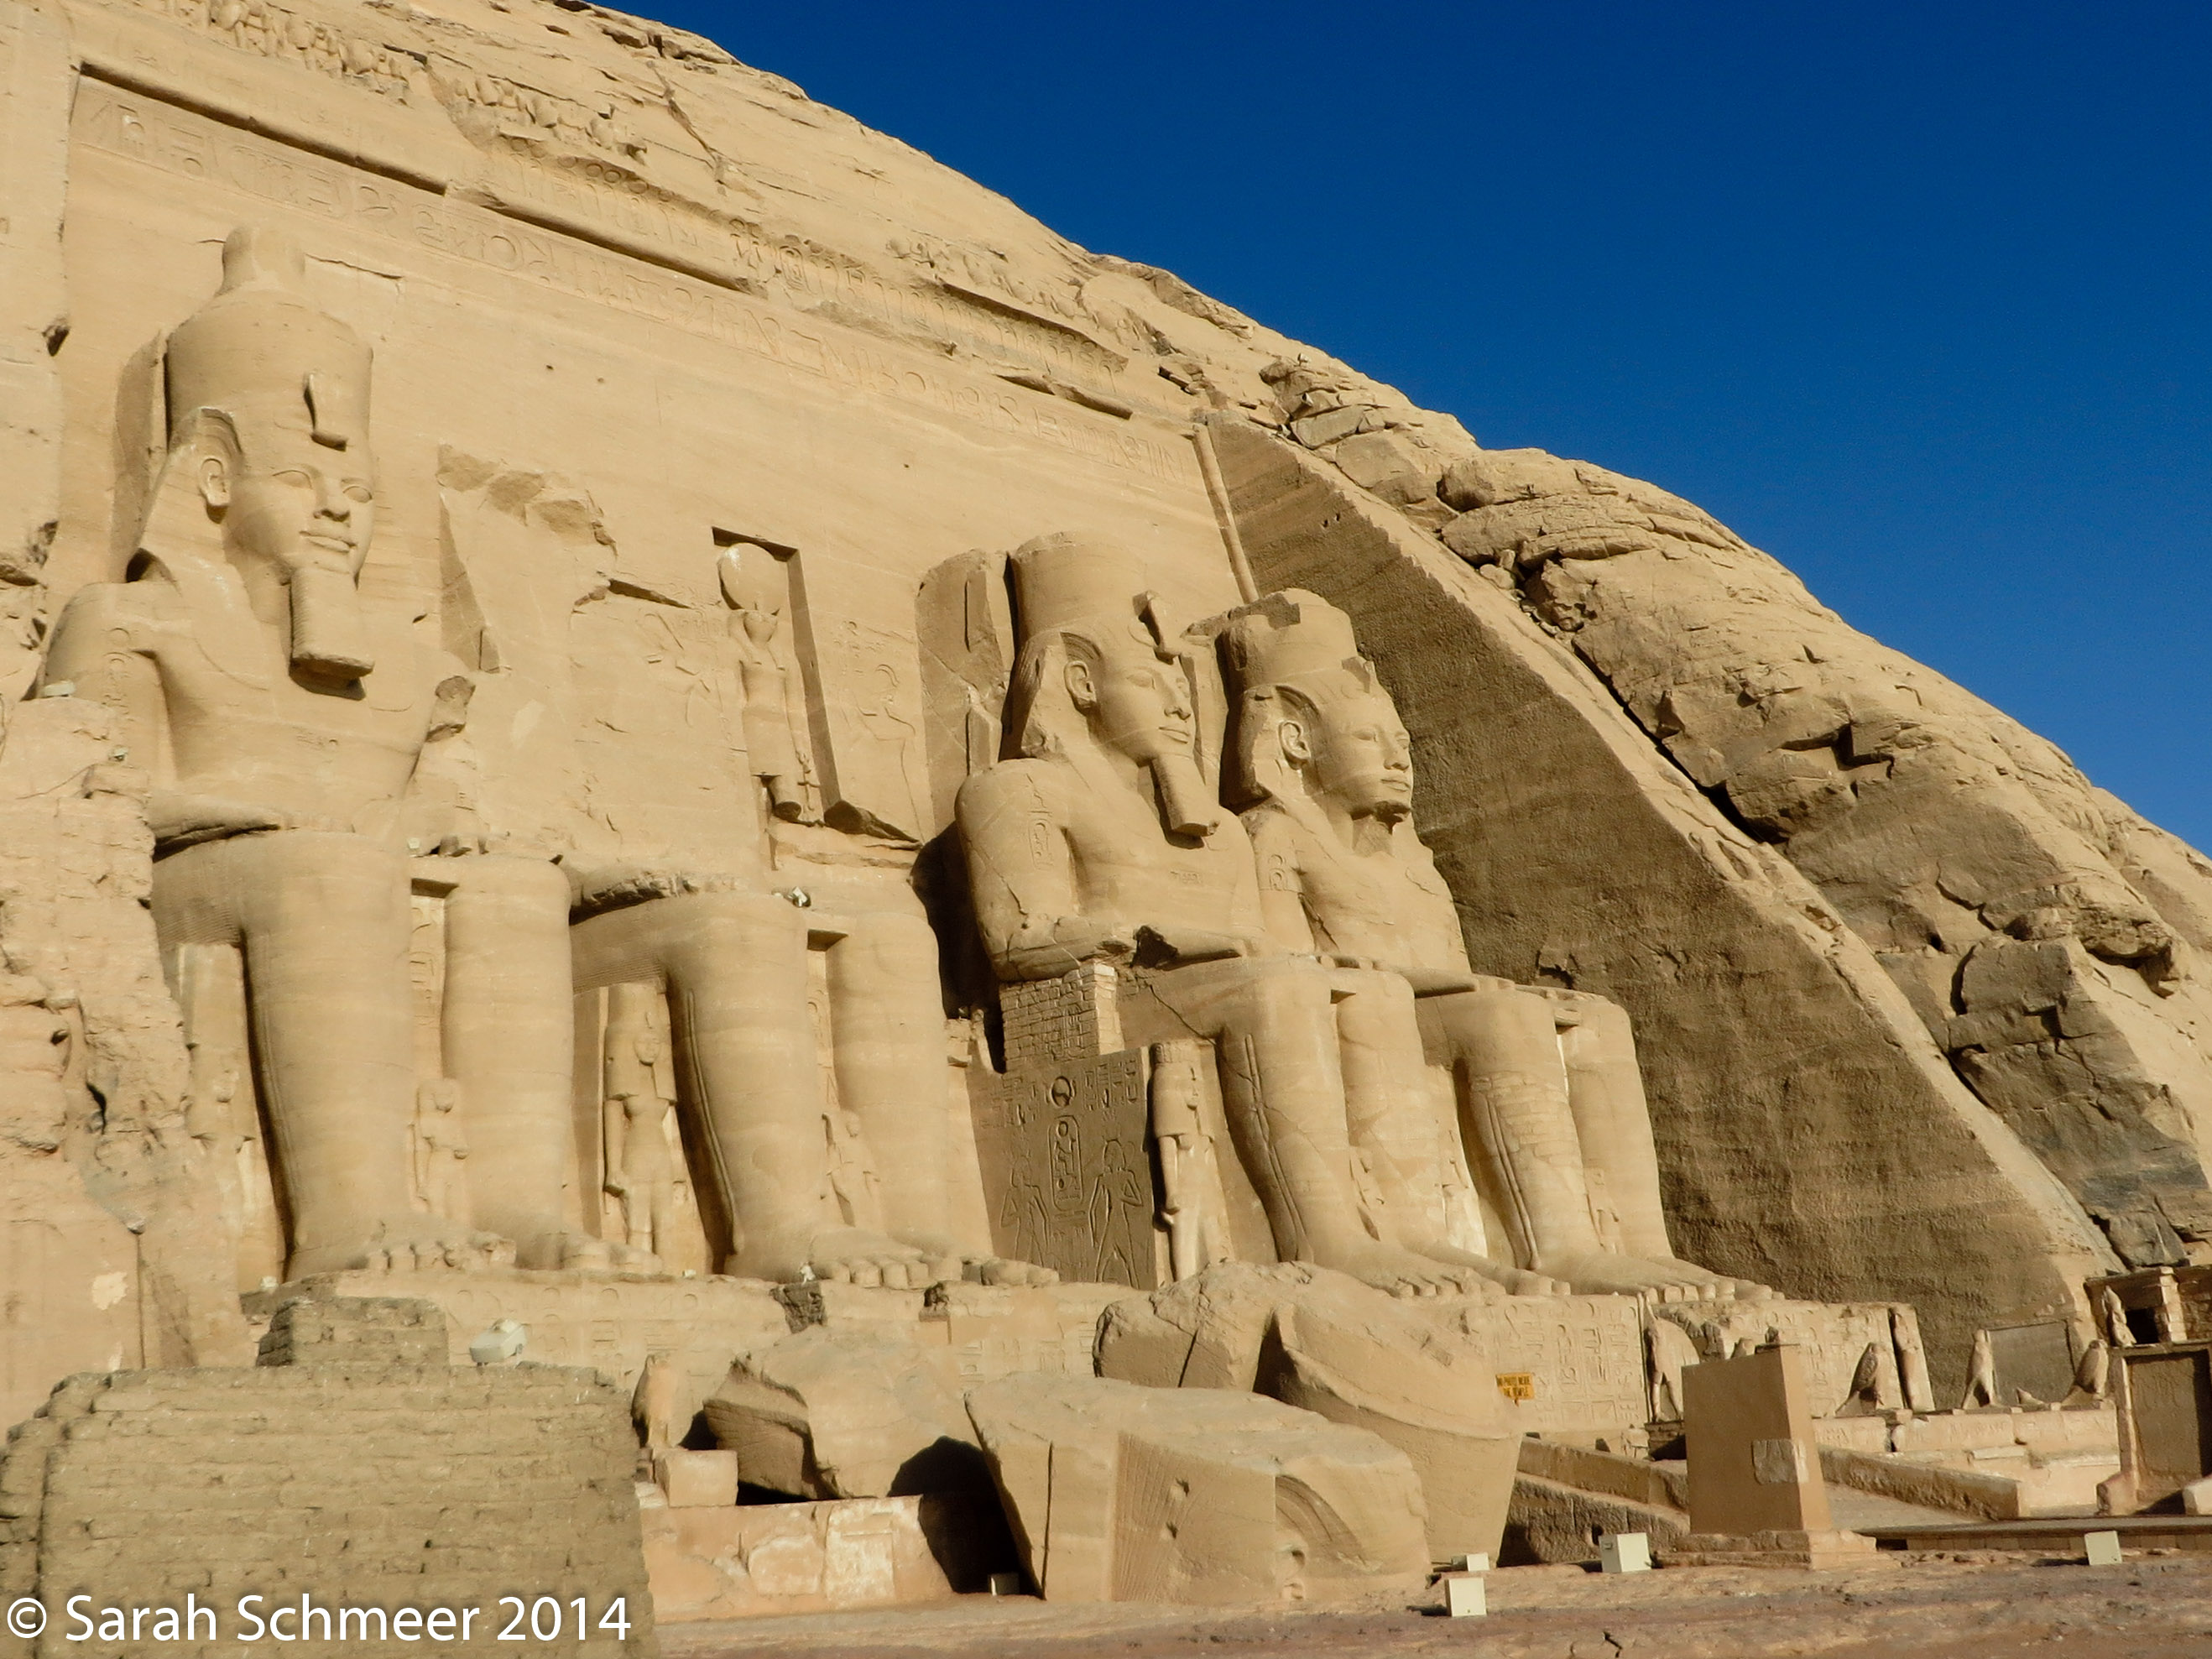 The Abu Simbel site containing the tomb of Ramses II.